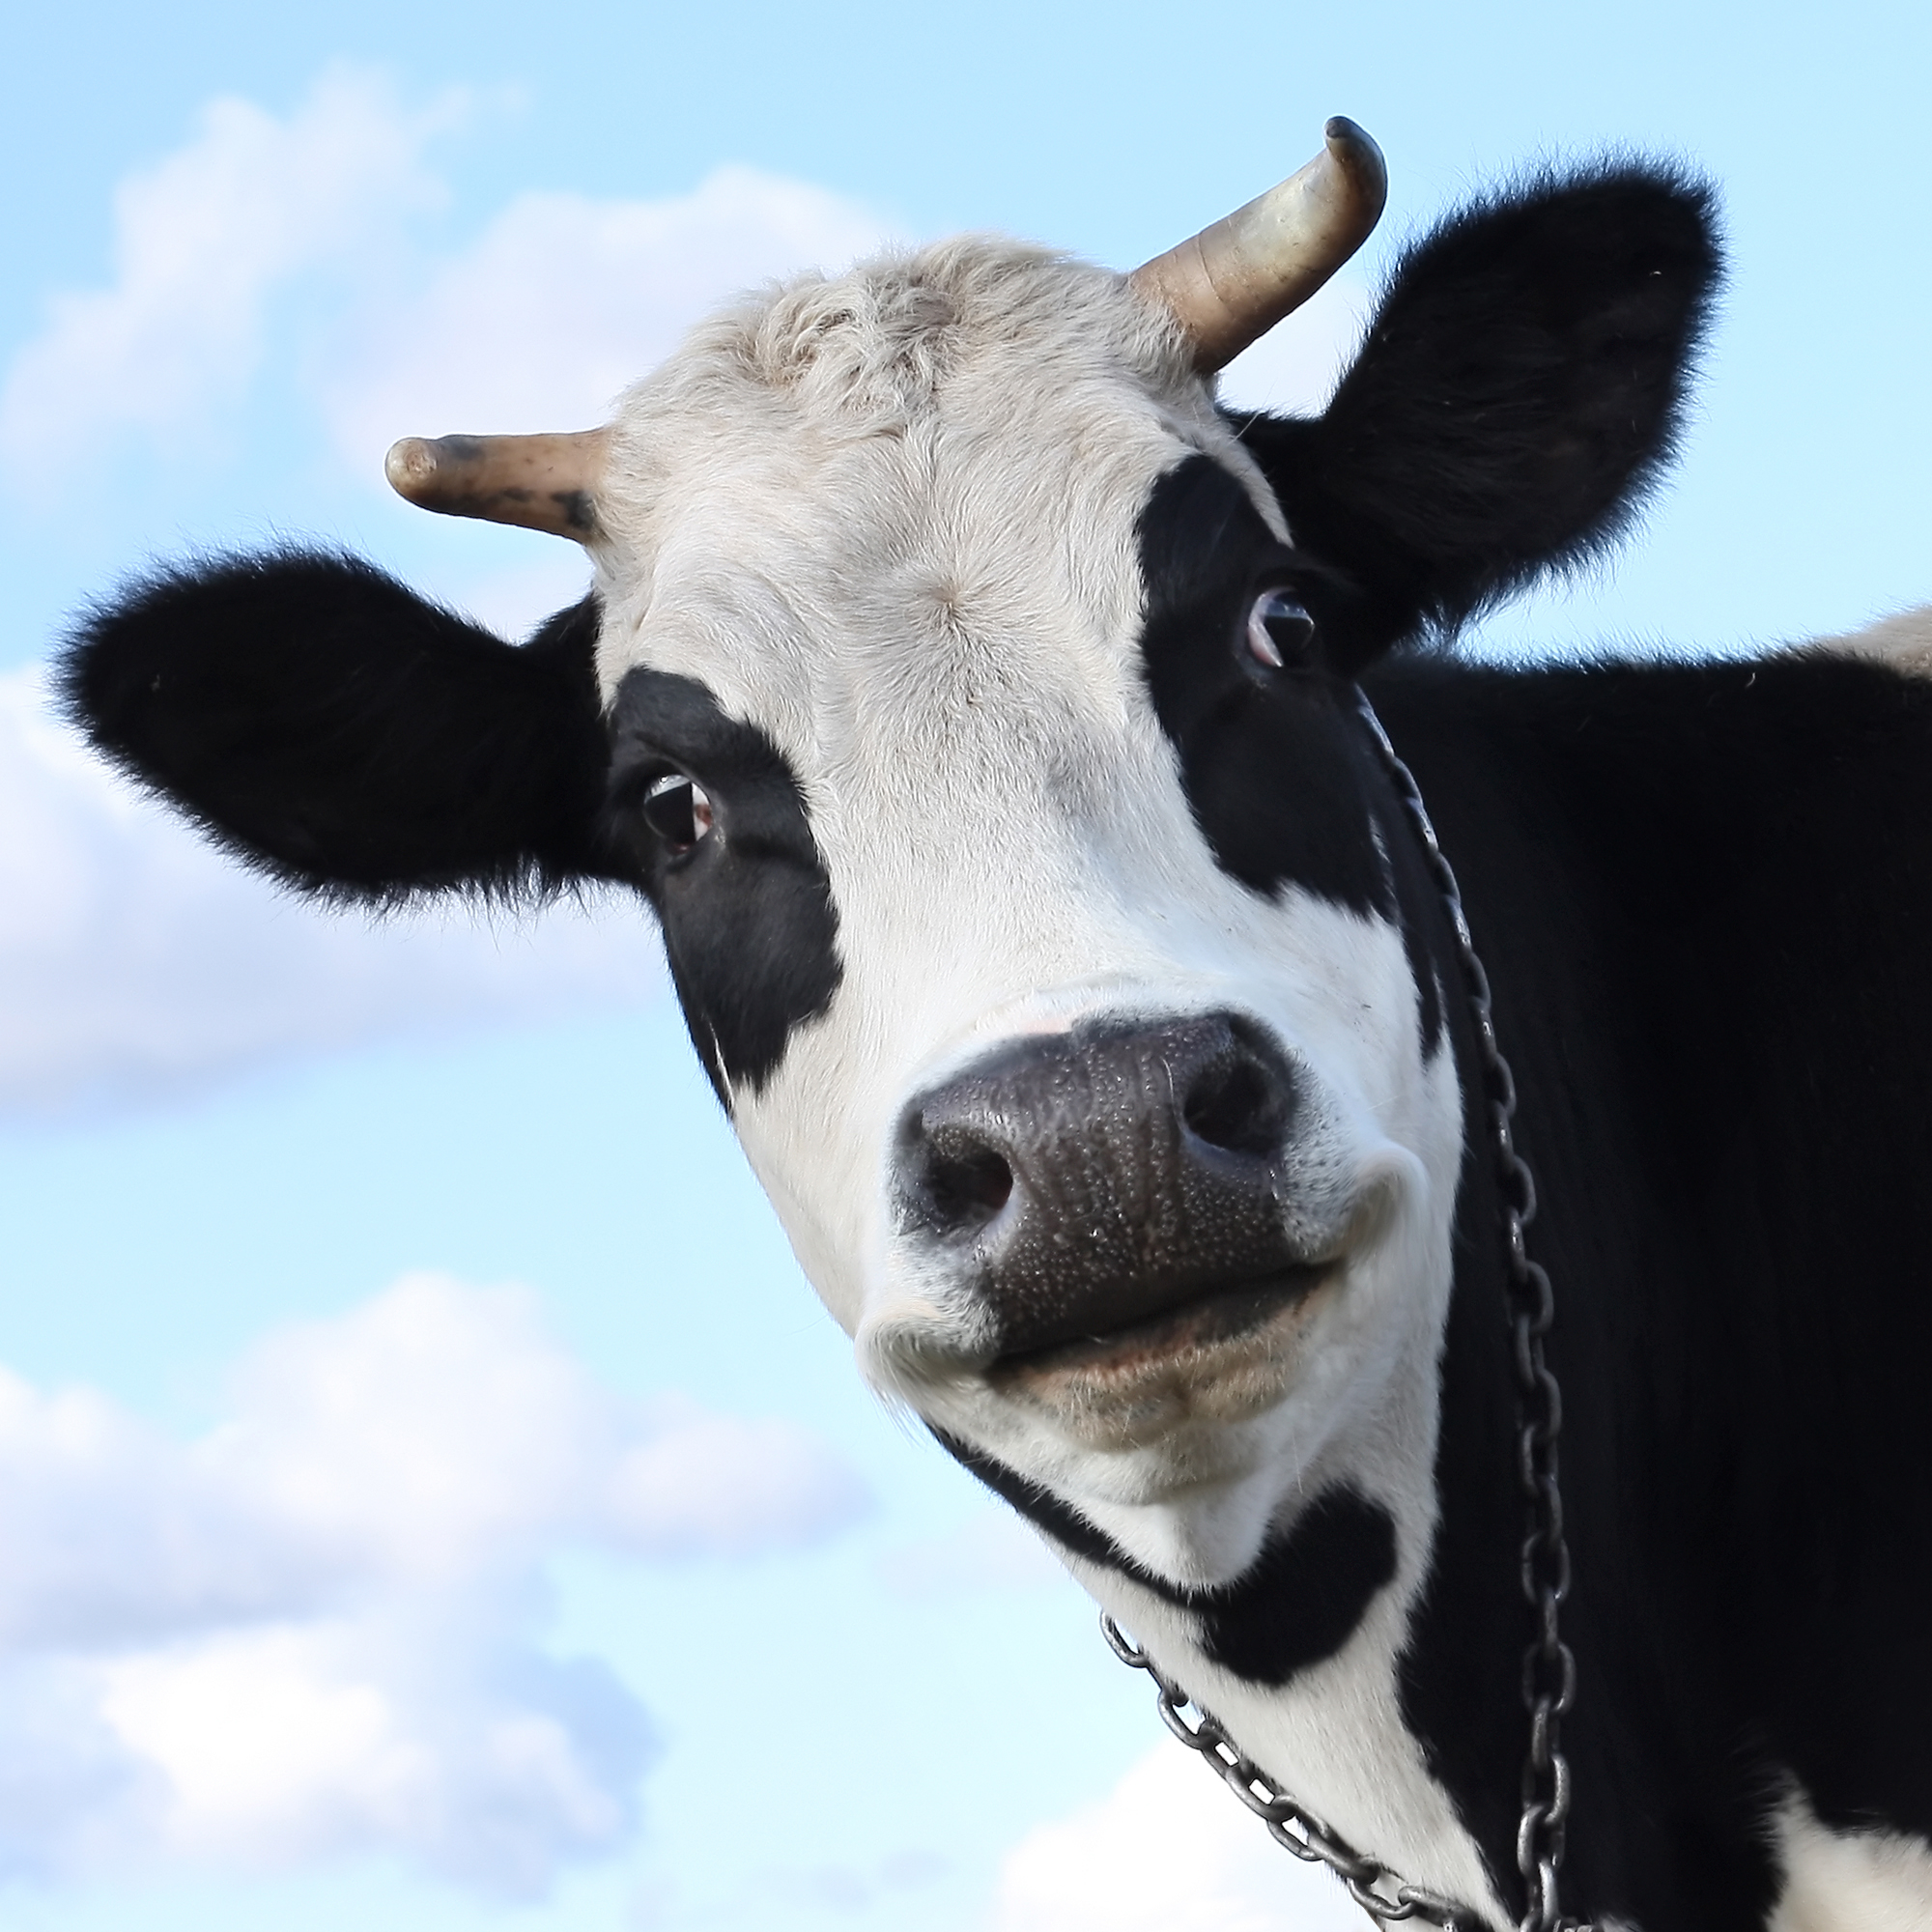 Smiling dairy cow